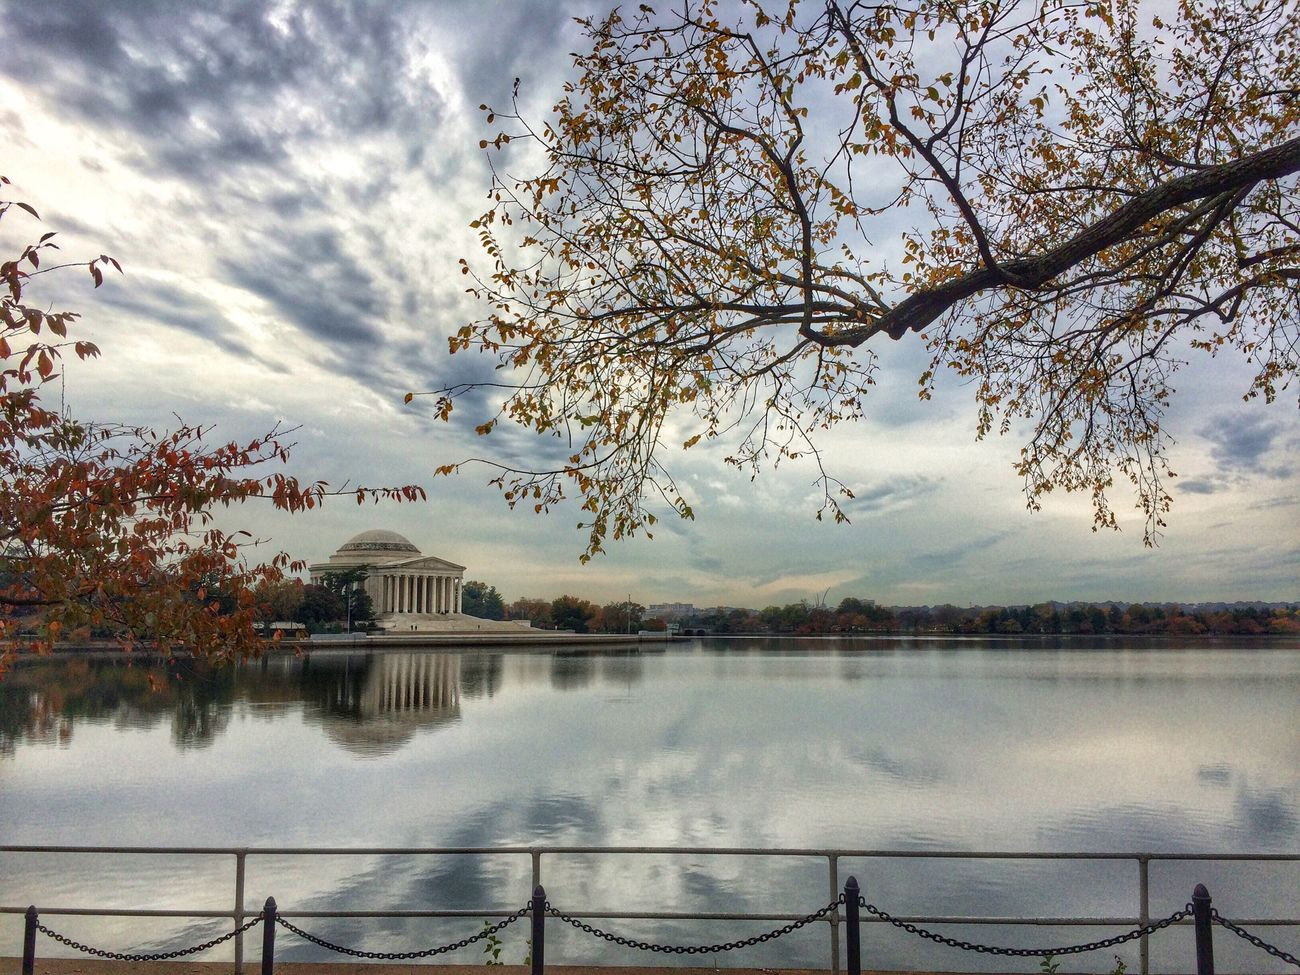 Just a moment in my day. Biking Jefferson Memorial